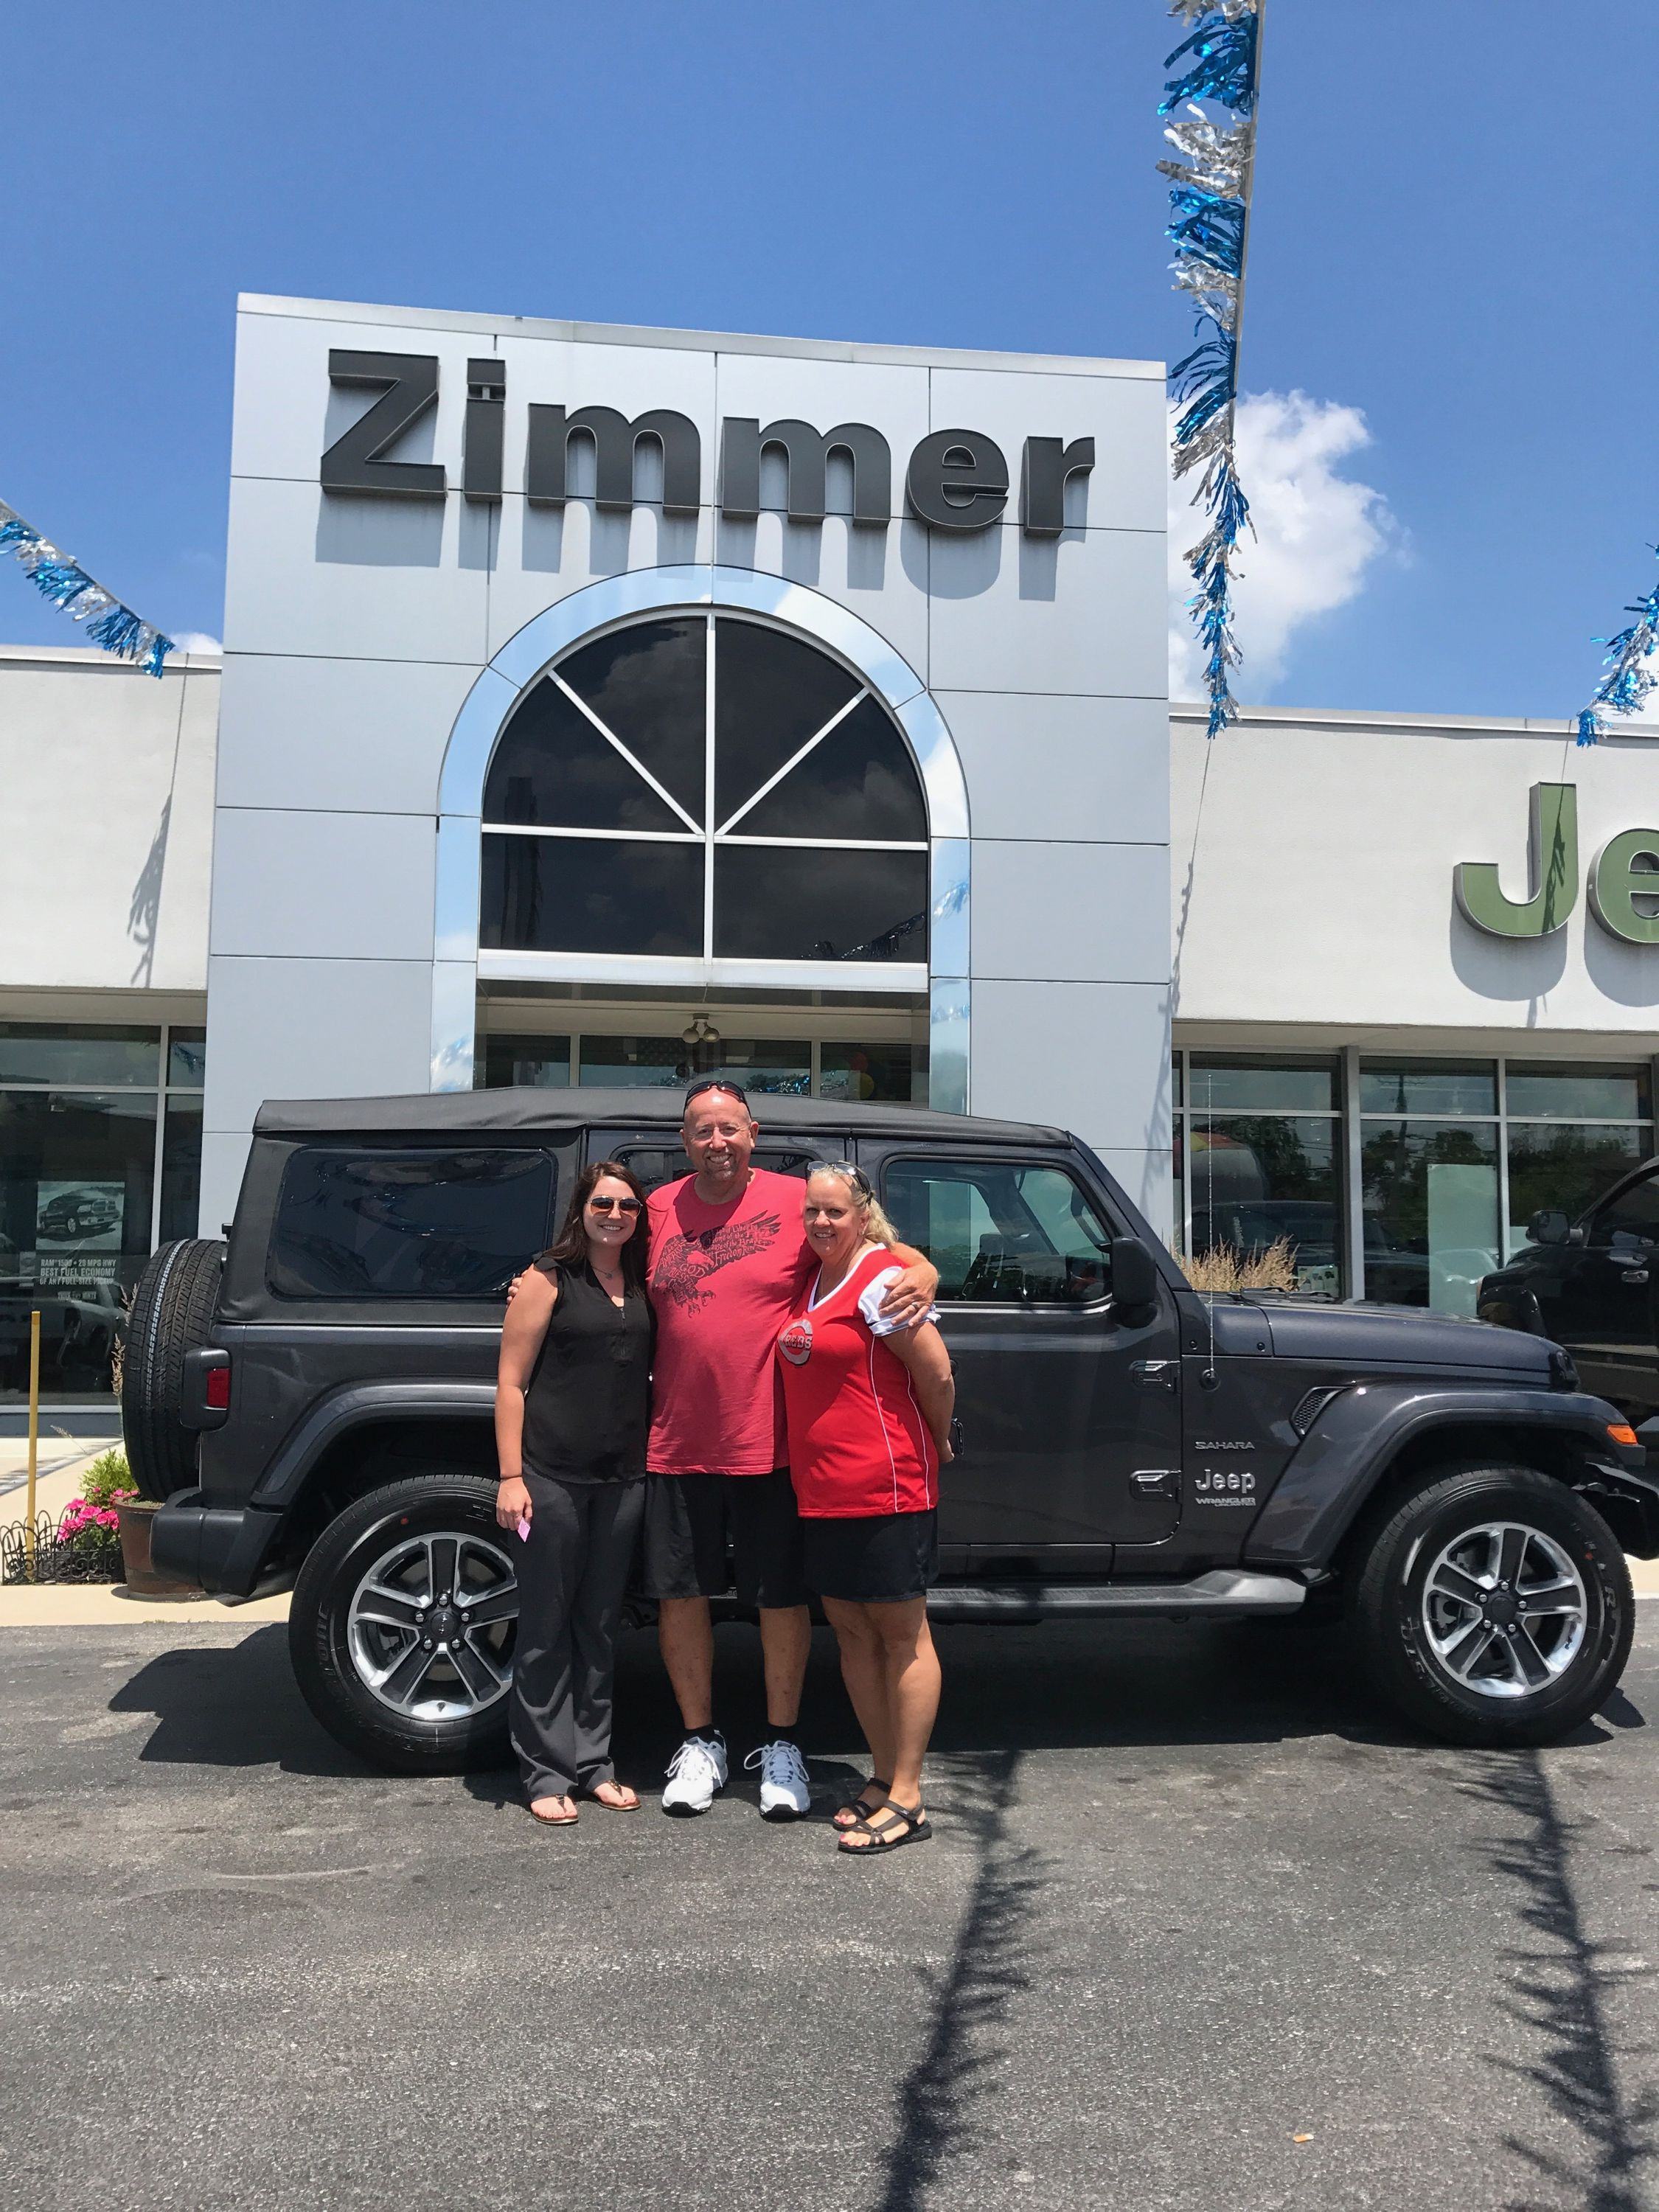 David And Lori Lane Are Thrilled To Be Rolling With The Jeep Peeps In Their New 2018 Jl Wrangler Unli Jeep Dealer Chrysler Dodge Jeep Wrangler Unlimited Sahara